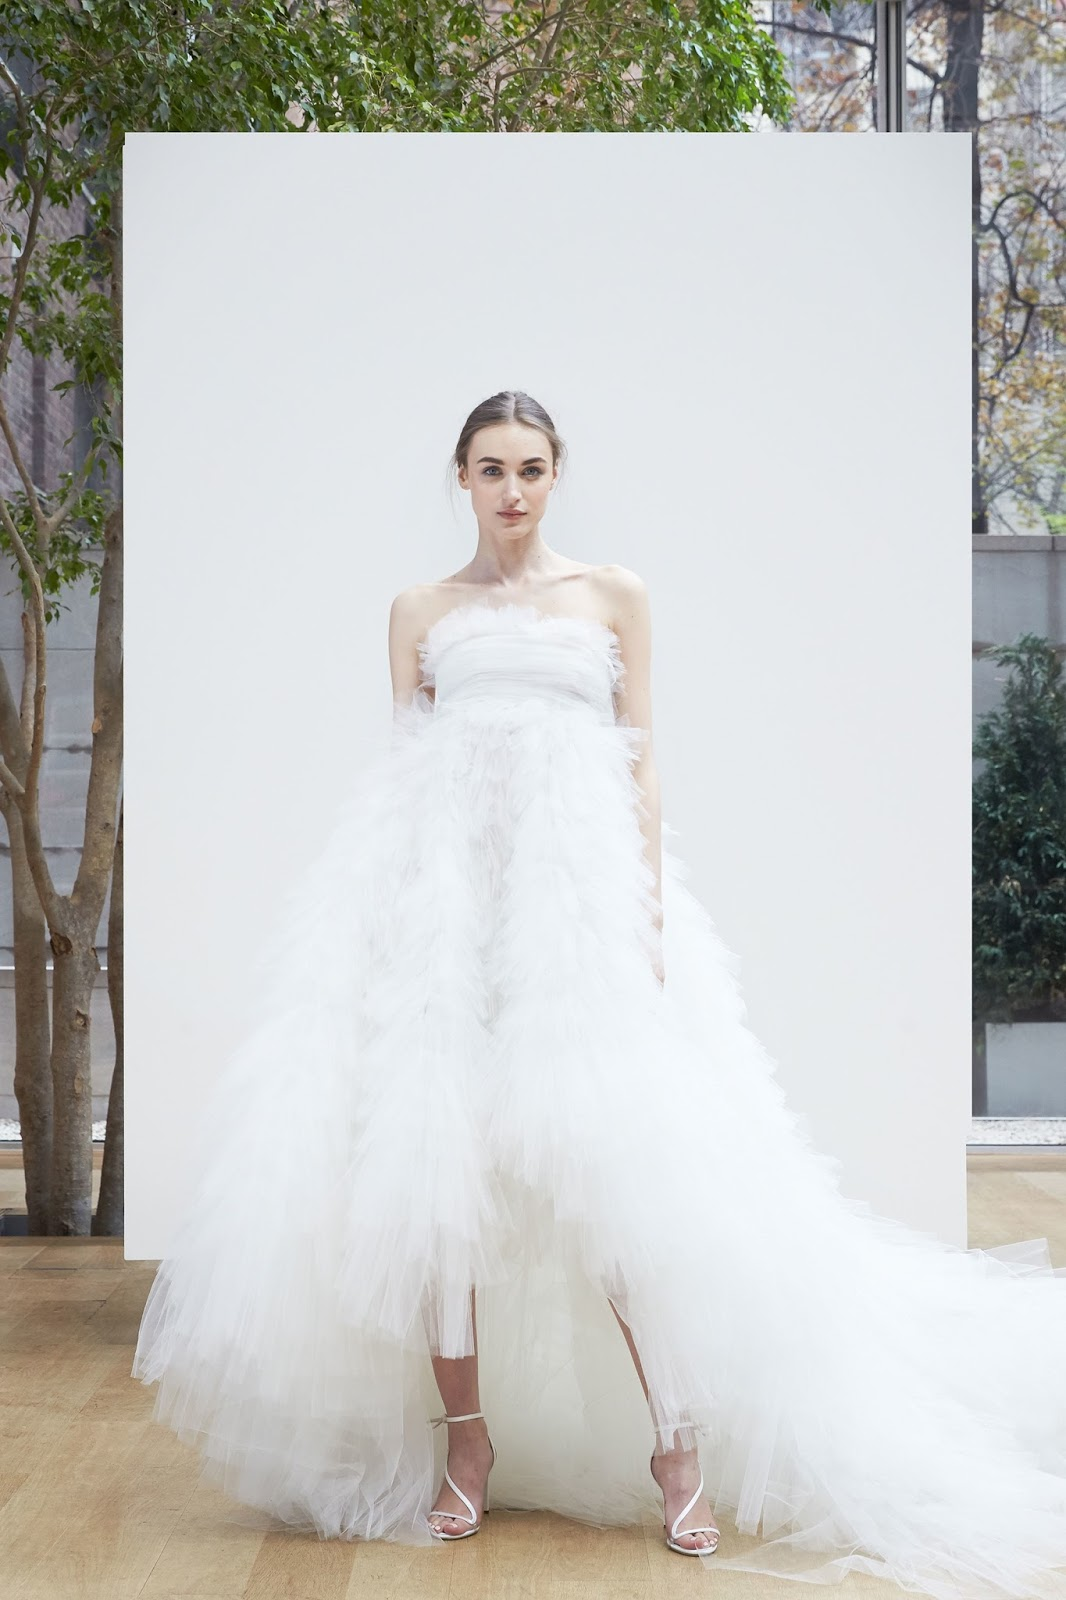 Exquisite Bridal Gowns: Oscar de la Renta | ZsaZsa Bellagio - Like ...